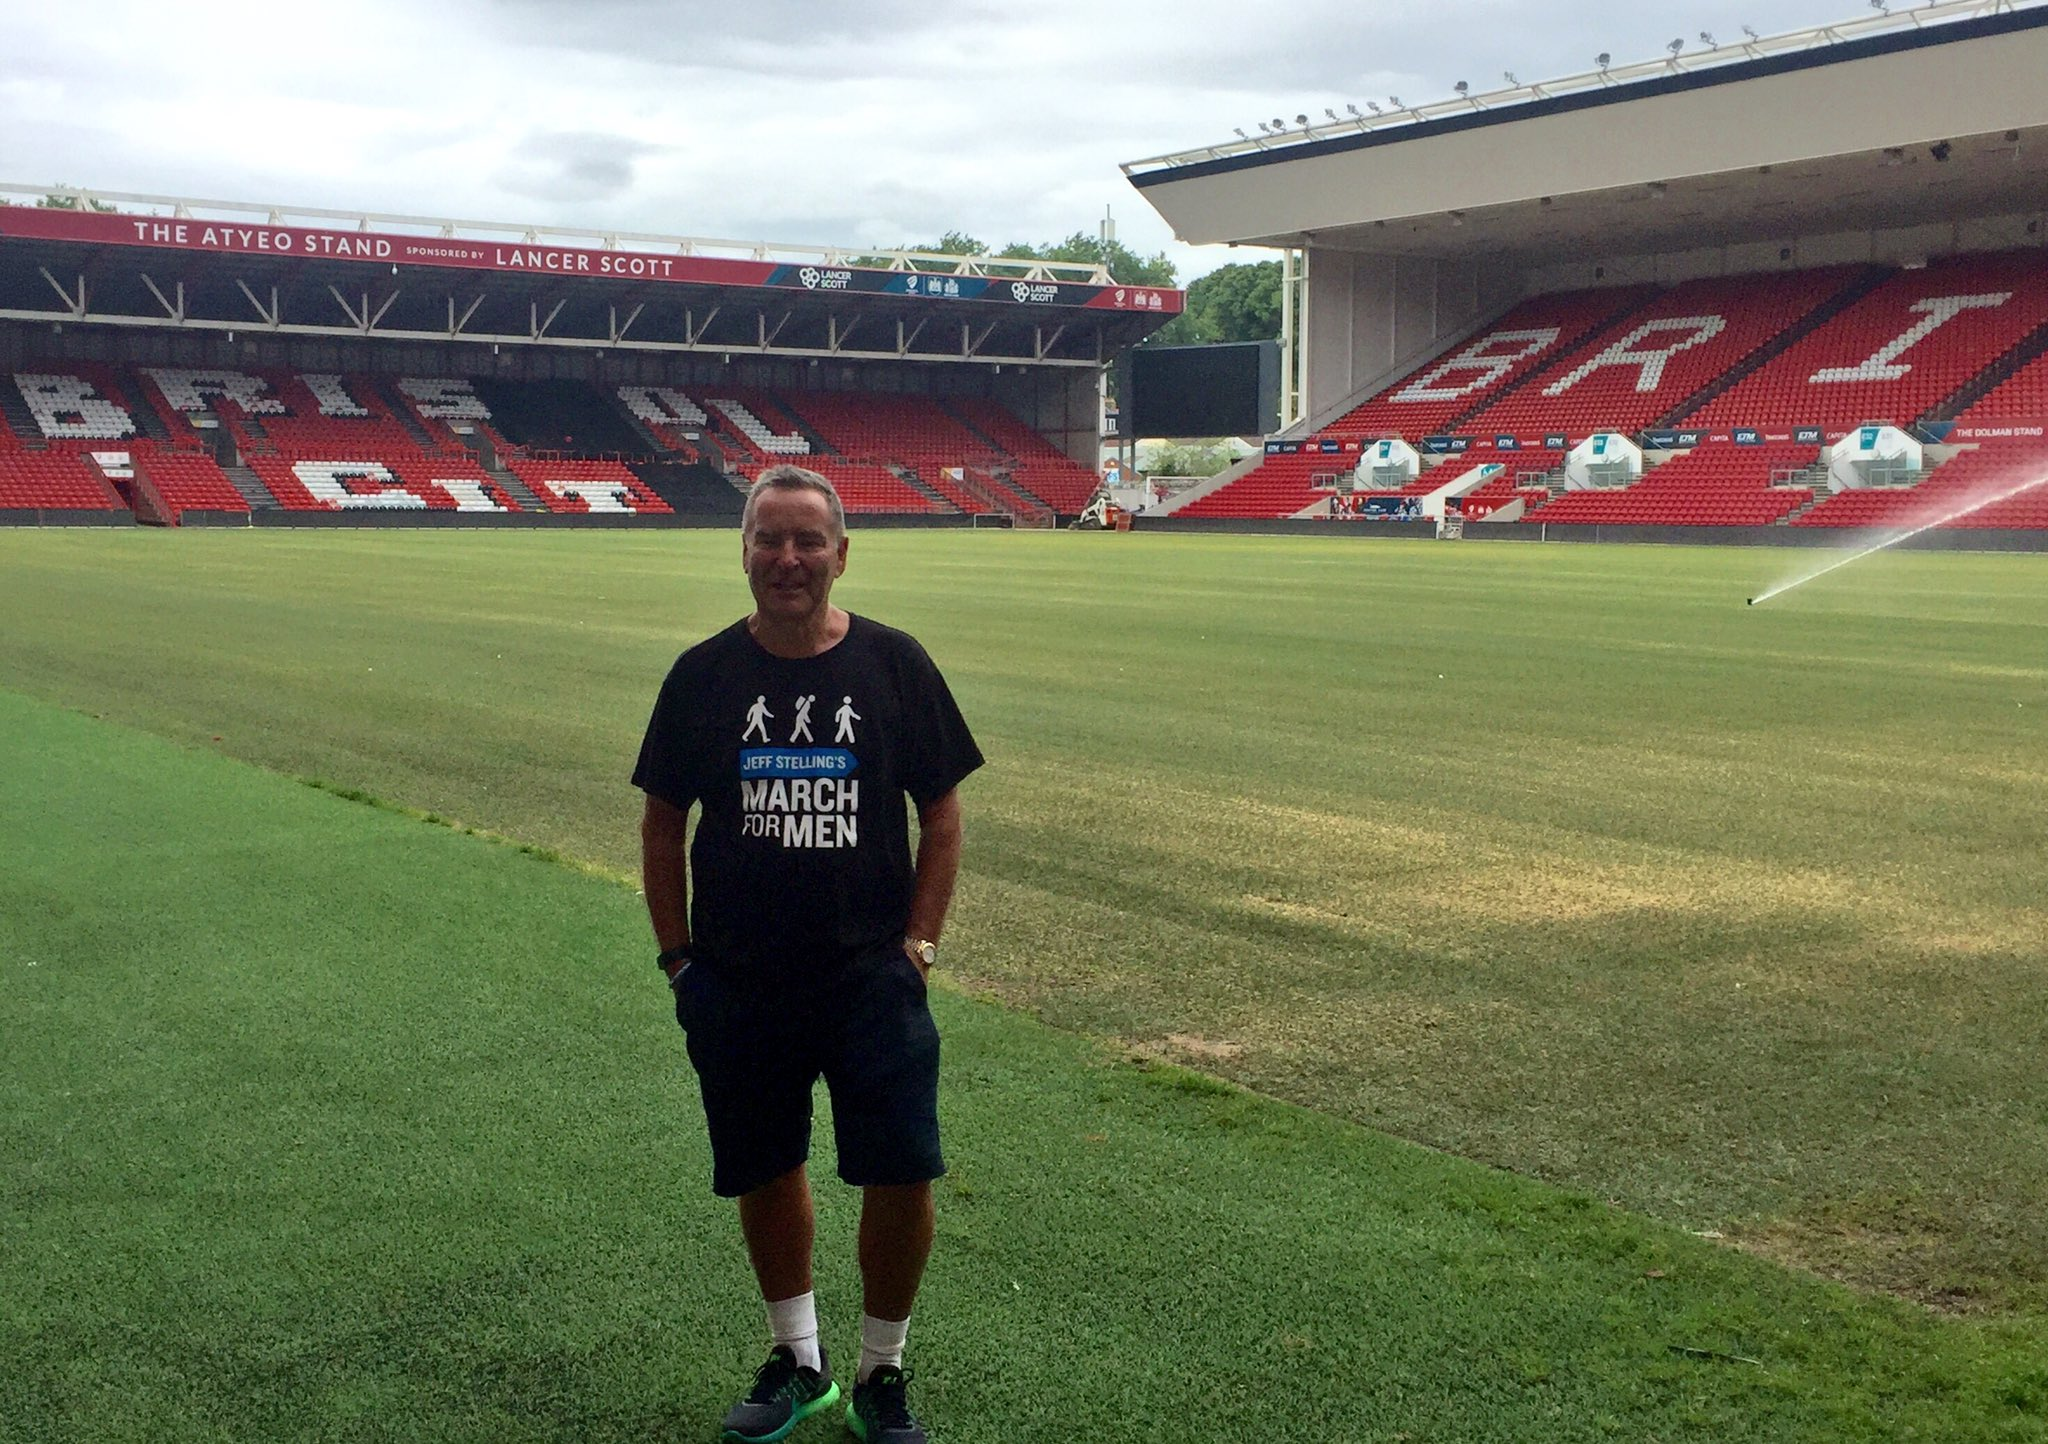 Jeff looking relaxed pitchside @bcfctweets' Ashton Gate home on Day 2 of #JeffsMarch🚶🏻 https://t.co/ML0LKDfDCI